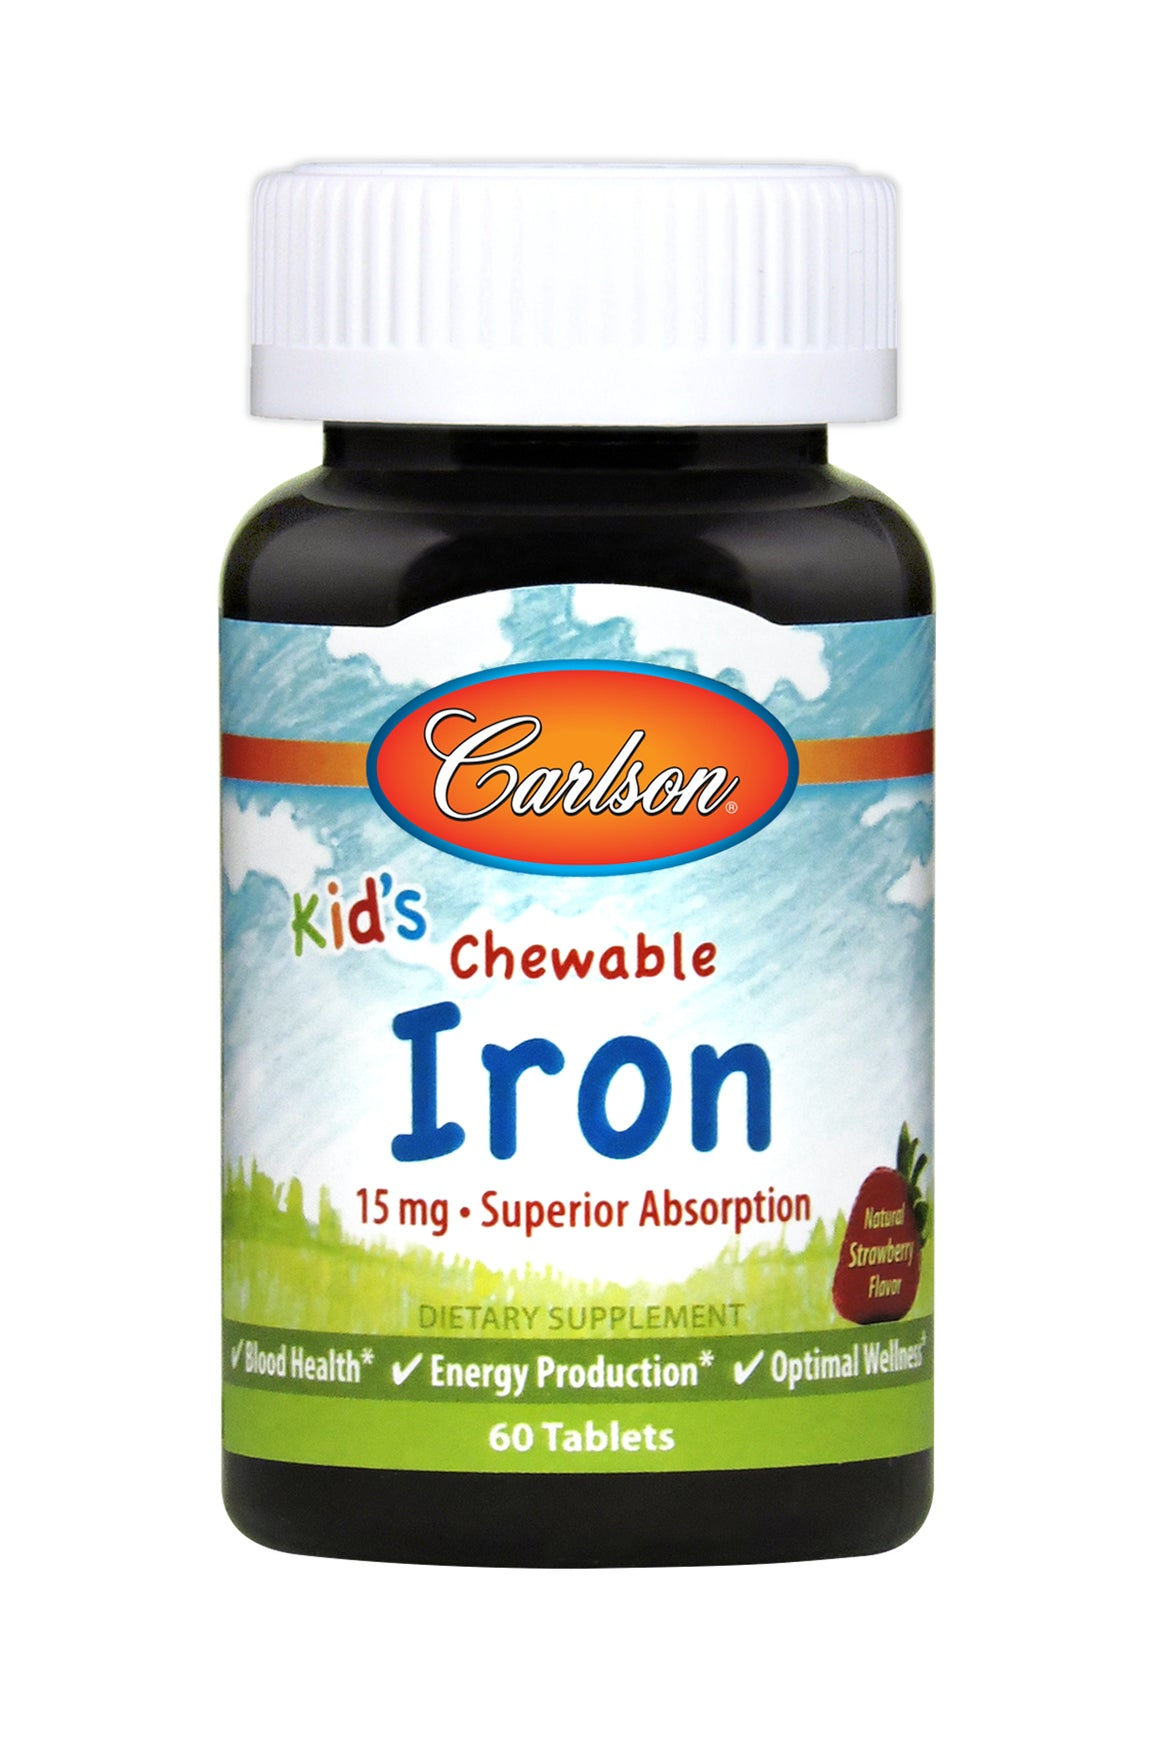 A bottle of Carlson Kid's Chewable Iron